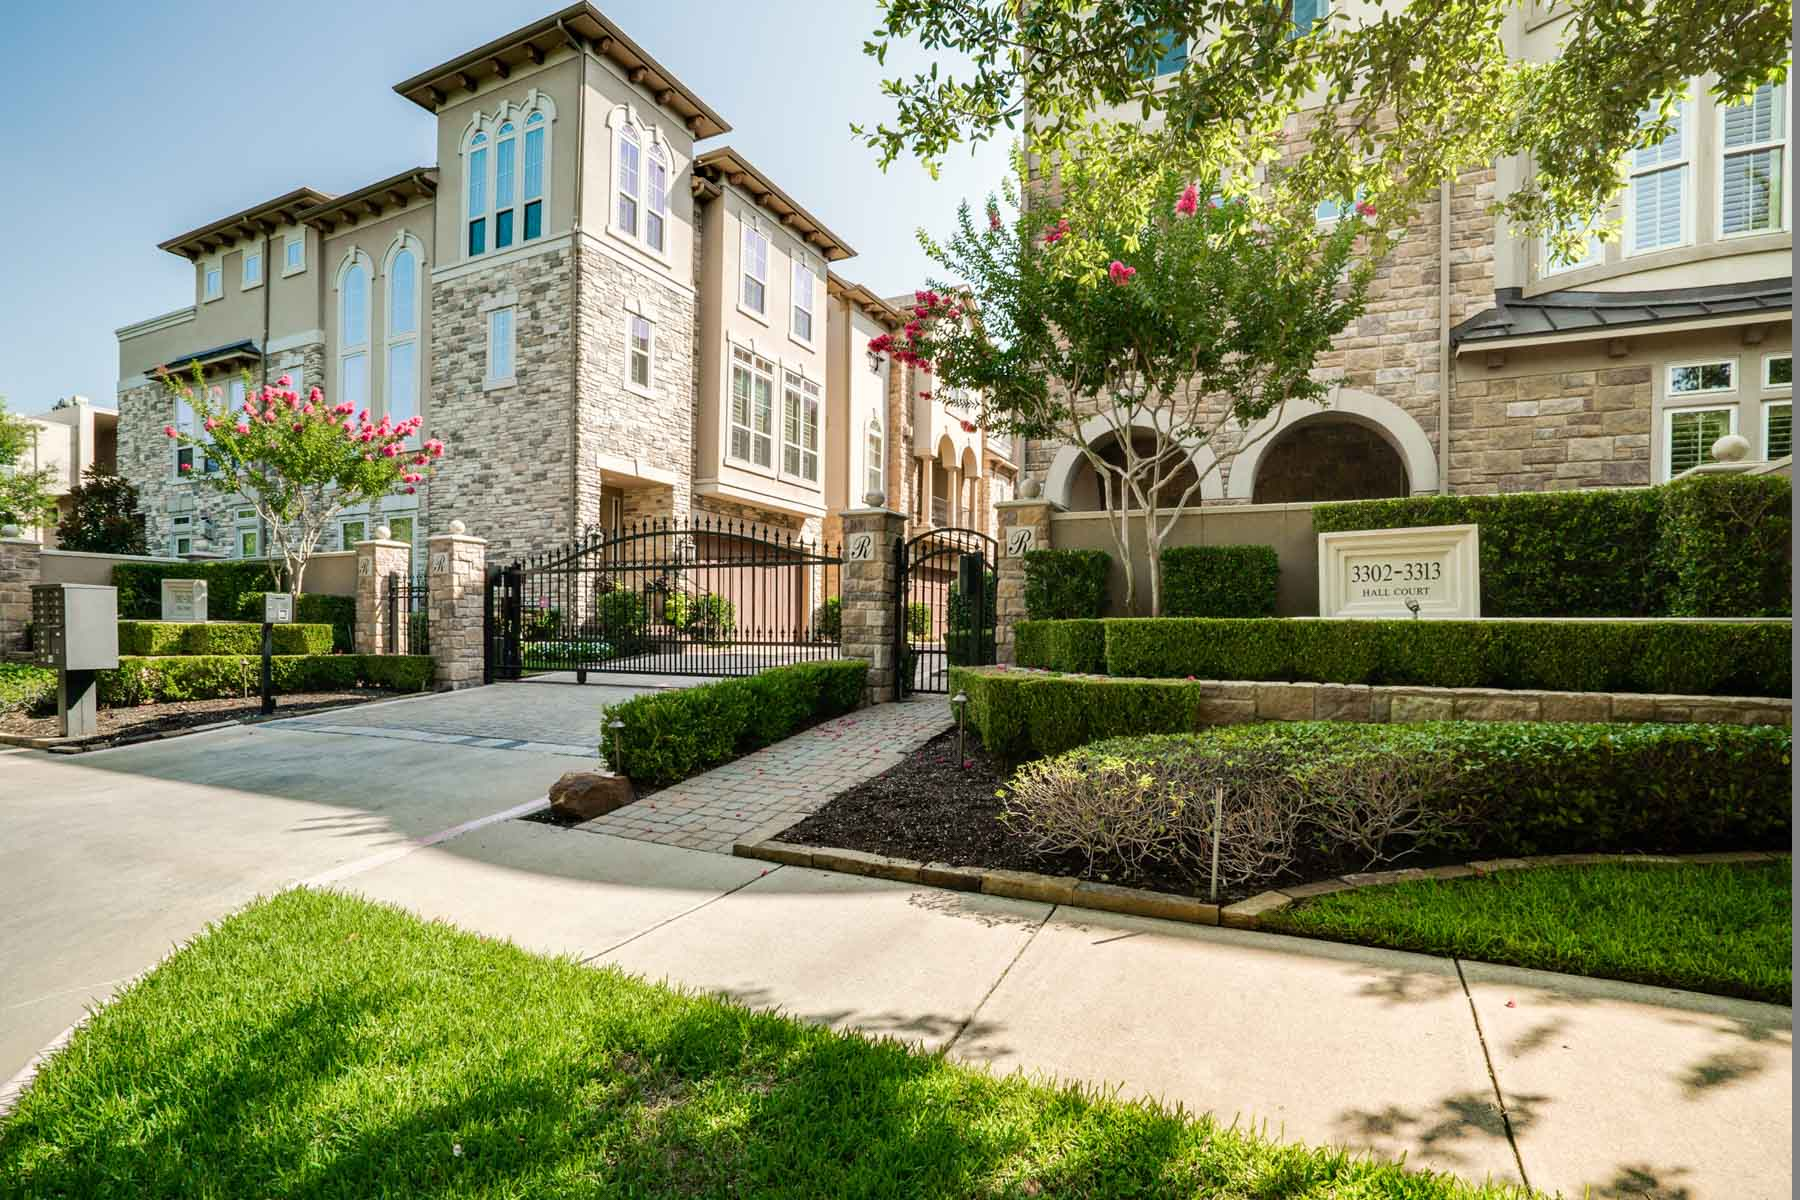 Villetta a schiera per Vendita alle ore Oak Lawn Gated Townhome 3307 Hall Court Dallas, Texas, 75219 Stati Uniti